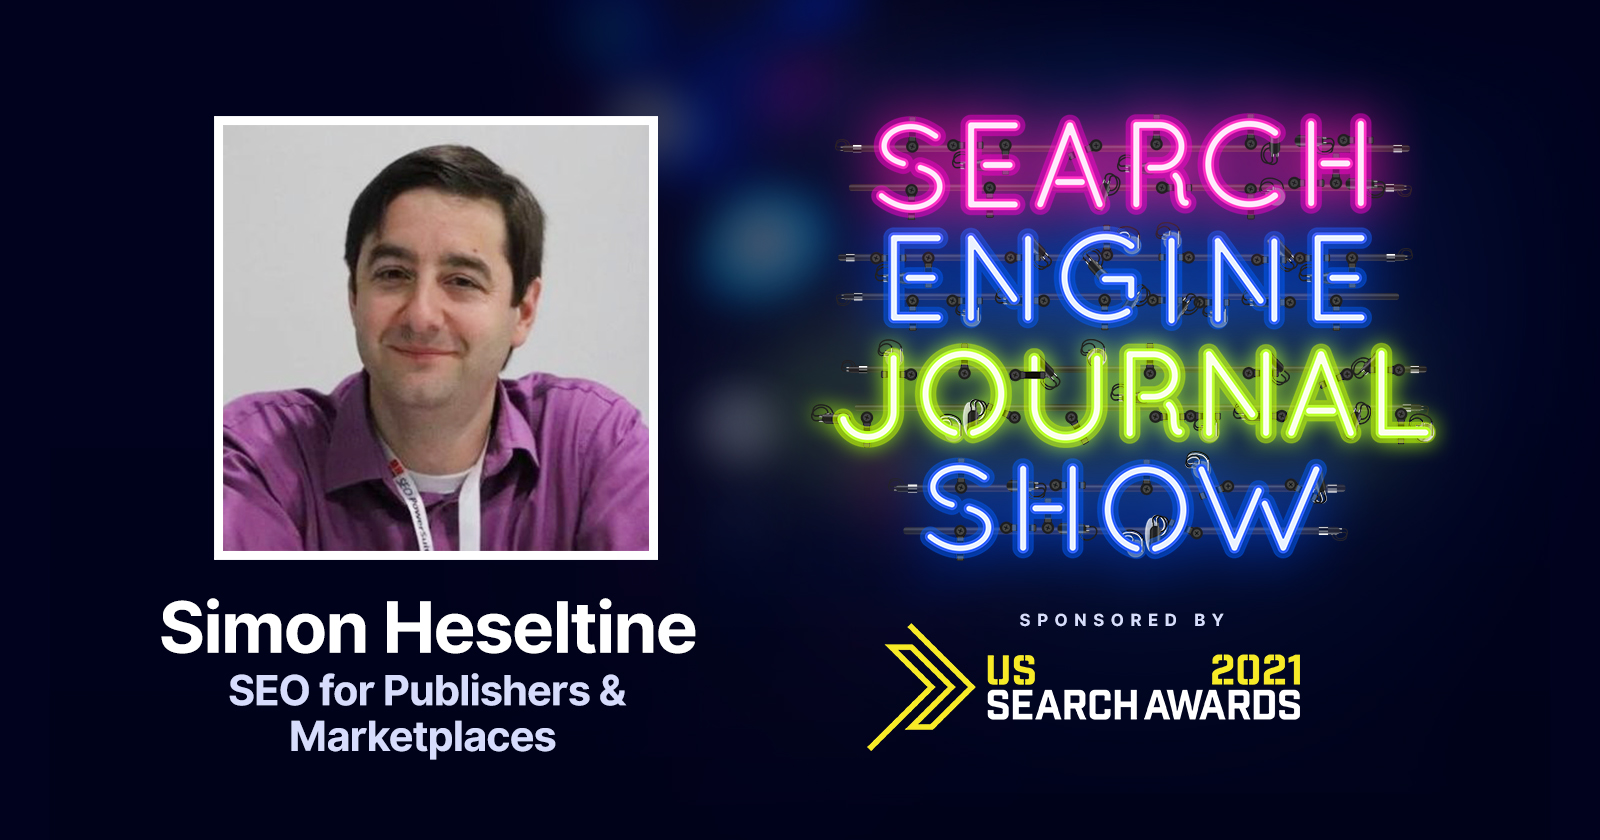 SEO for Publishers and Marketplaces with Simon Heseltine [Podcast]